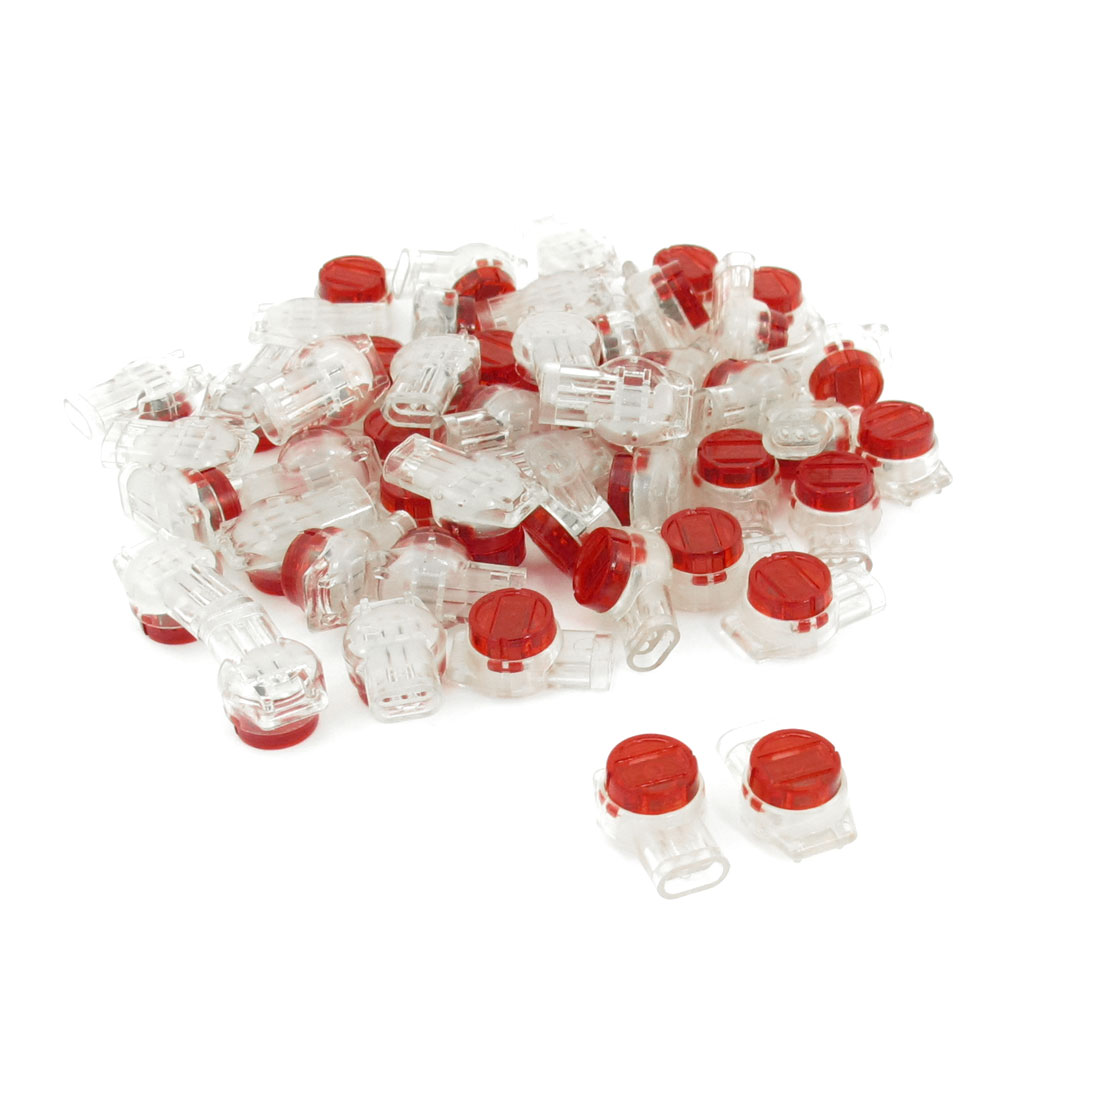 50 Pcs Red Clear 3 Ports UY Connector for 0.4mm-0.9mm Wire Conductors